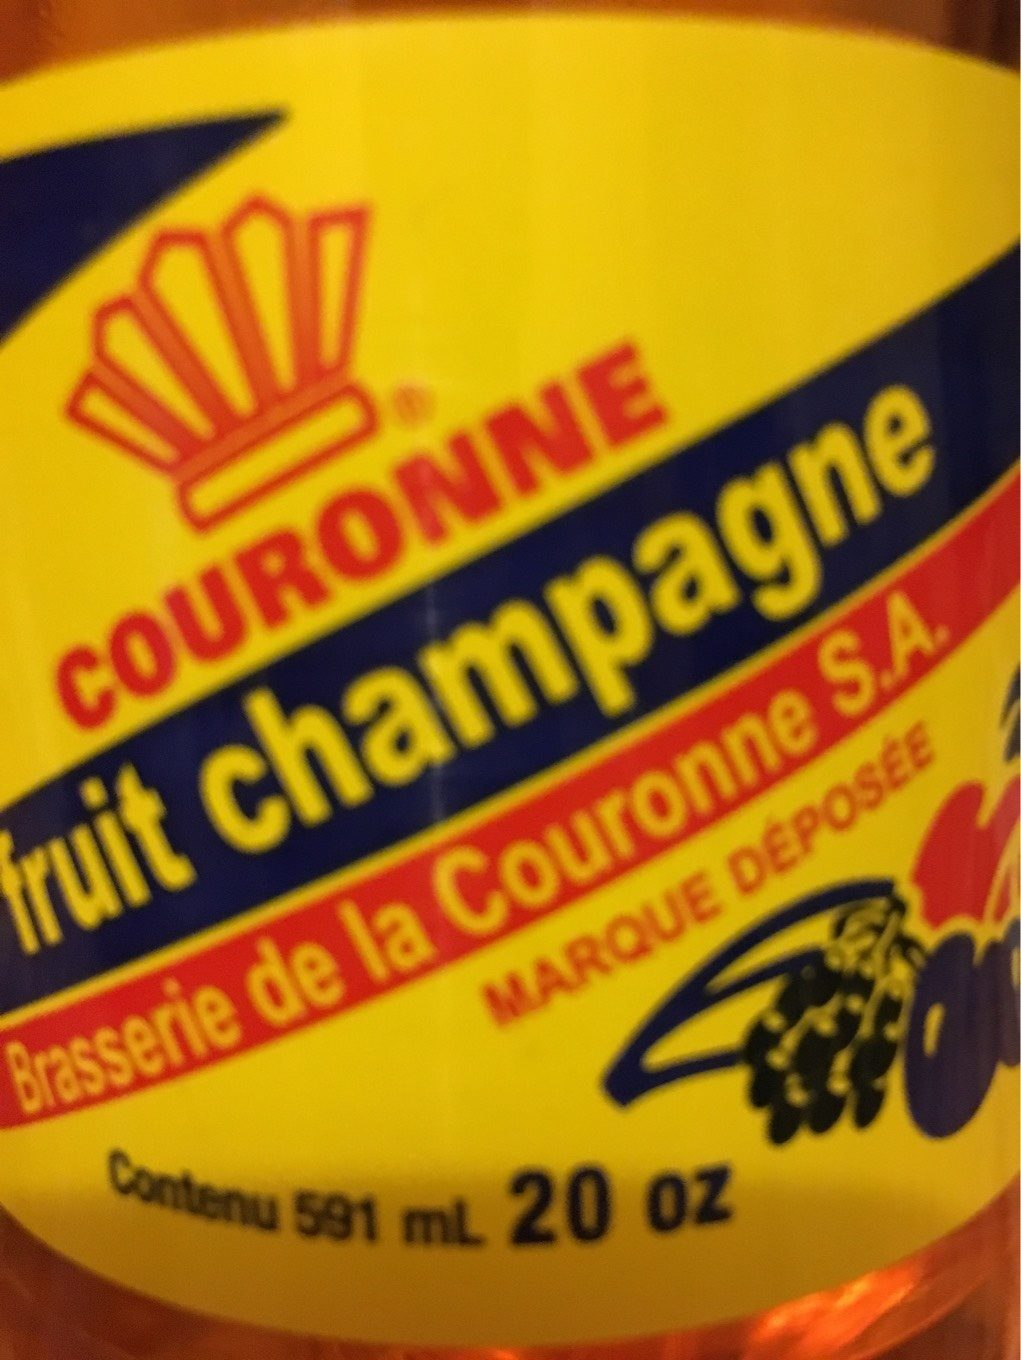 Cola Couronne Fruit Champagne - Product - fr